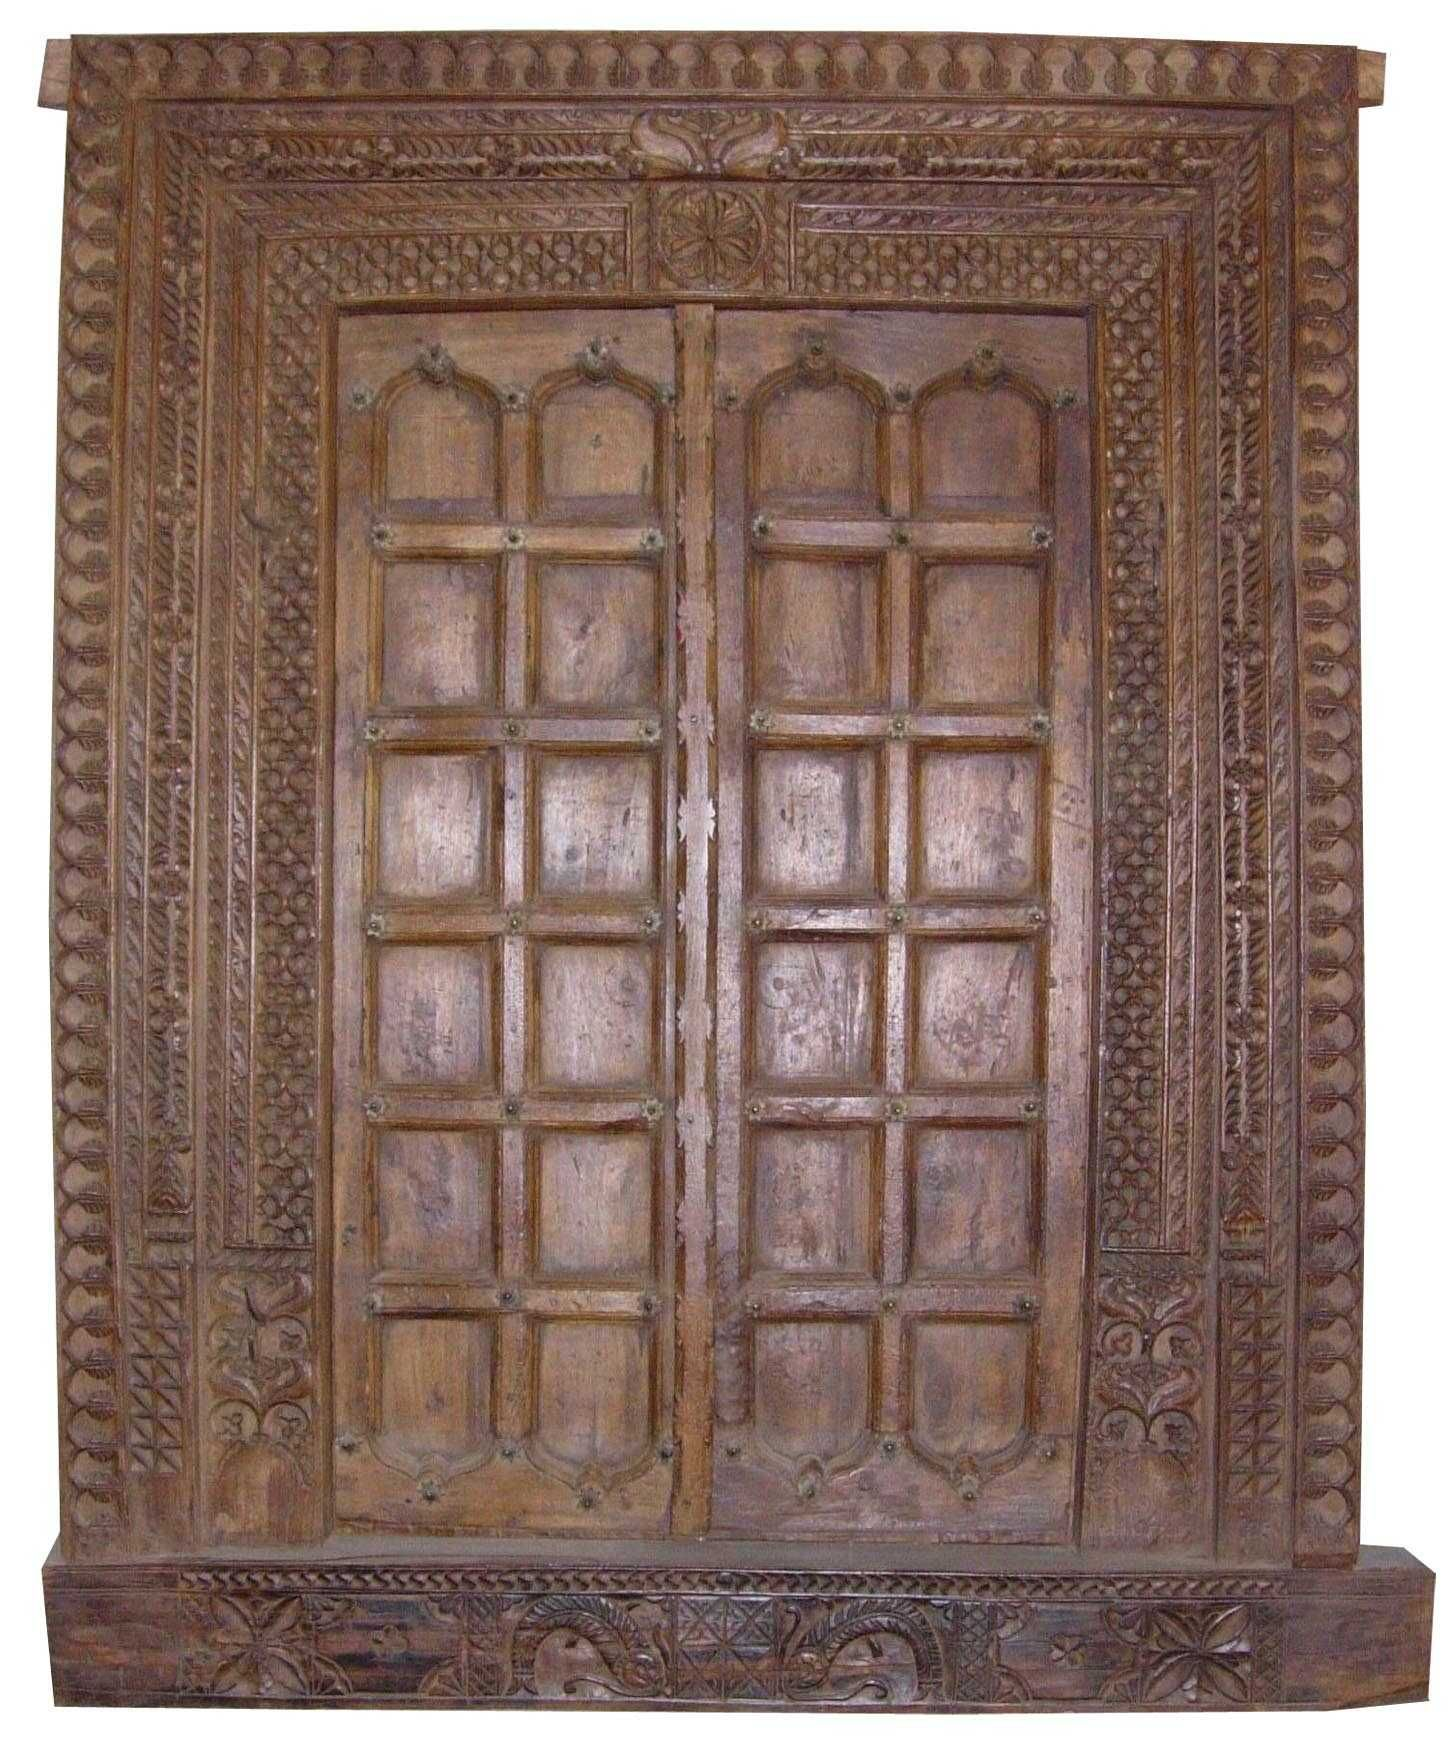 pictures of different types of antiques | Wide Antique Wooden Door  Collection Many Different Types Of - Pictures Of Different Types Of Antiques Wide Antique Wooden Door